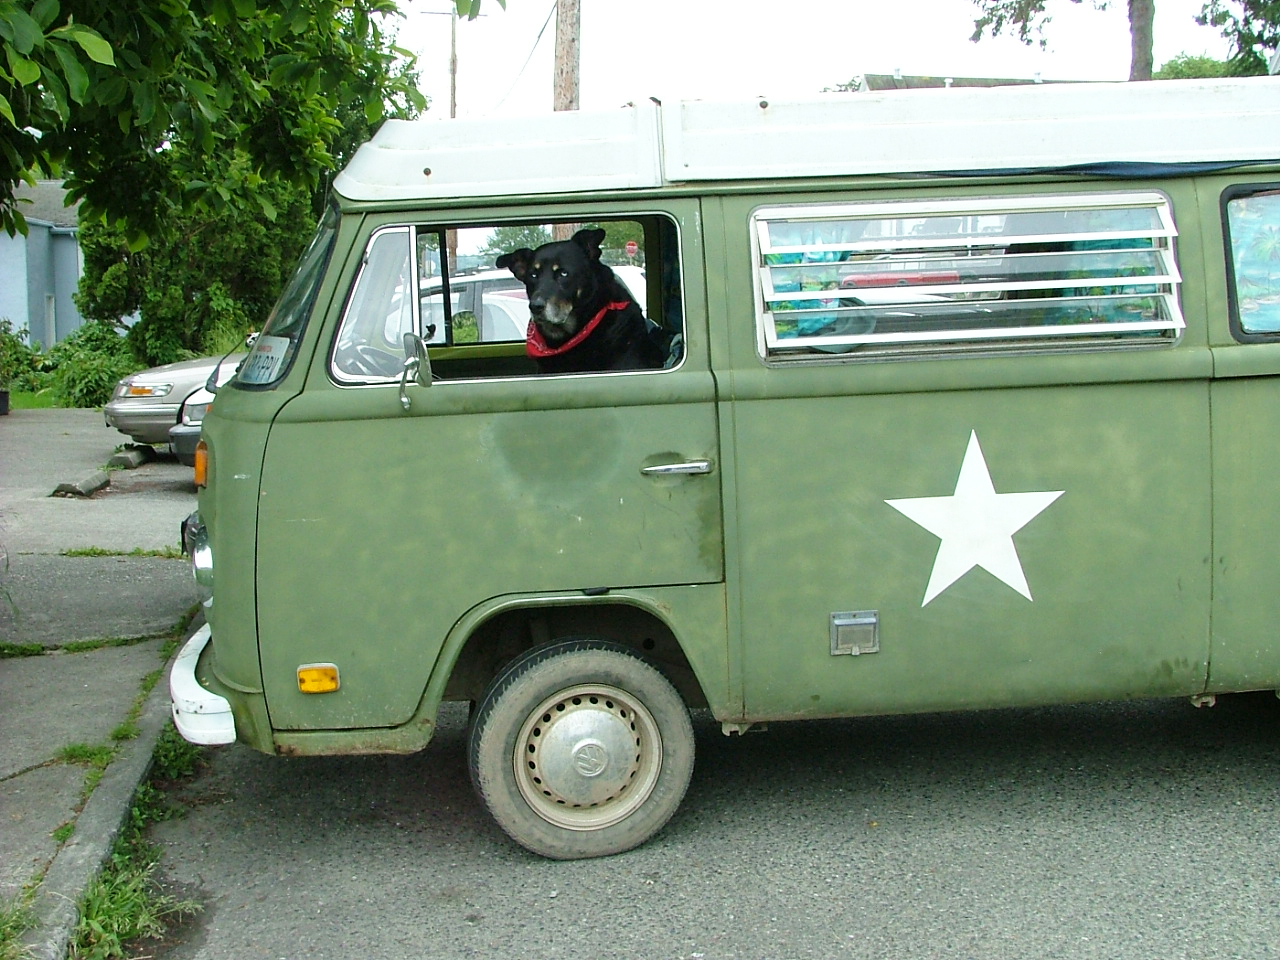 DEXTER, PARKED AT THE BURTON POST OFFICE IN HIS KEEPER'S 1972 VW ARMY BUS.